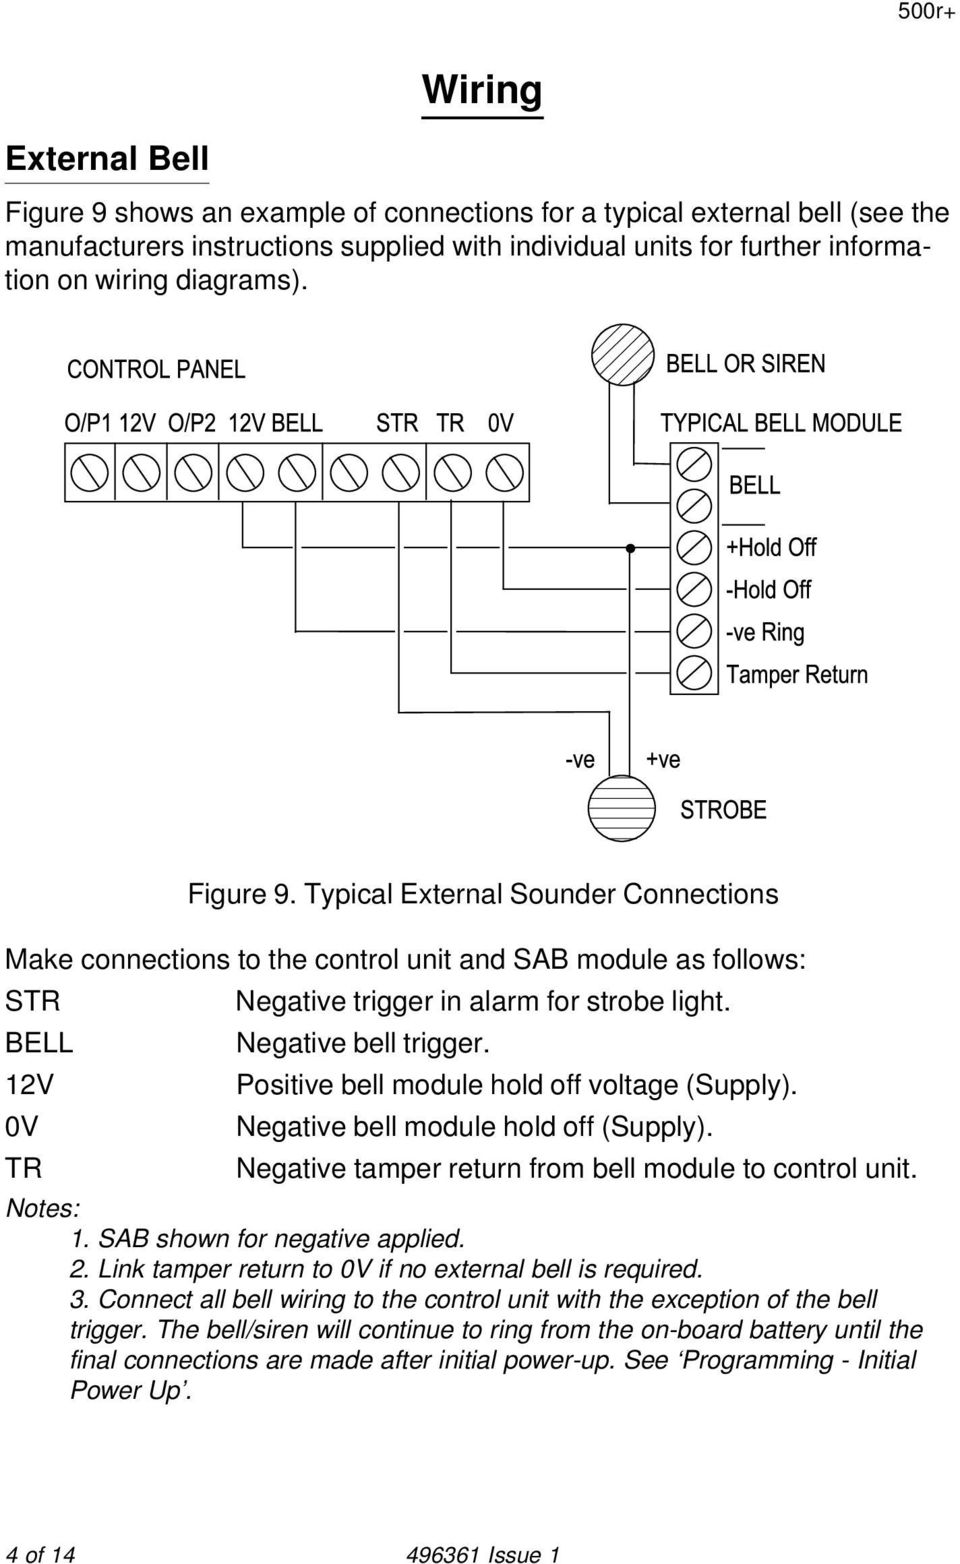 12V Positive bell module hold off voltage (Supply). 0V Negative bell module hold off (Supply). TR Negative tamper return from bell module to control unit. Notes: 1. SAB shown for negative applied. 2.